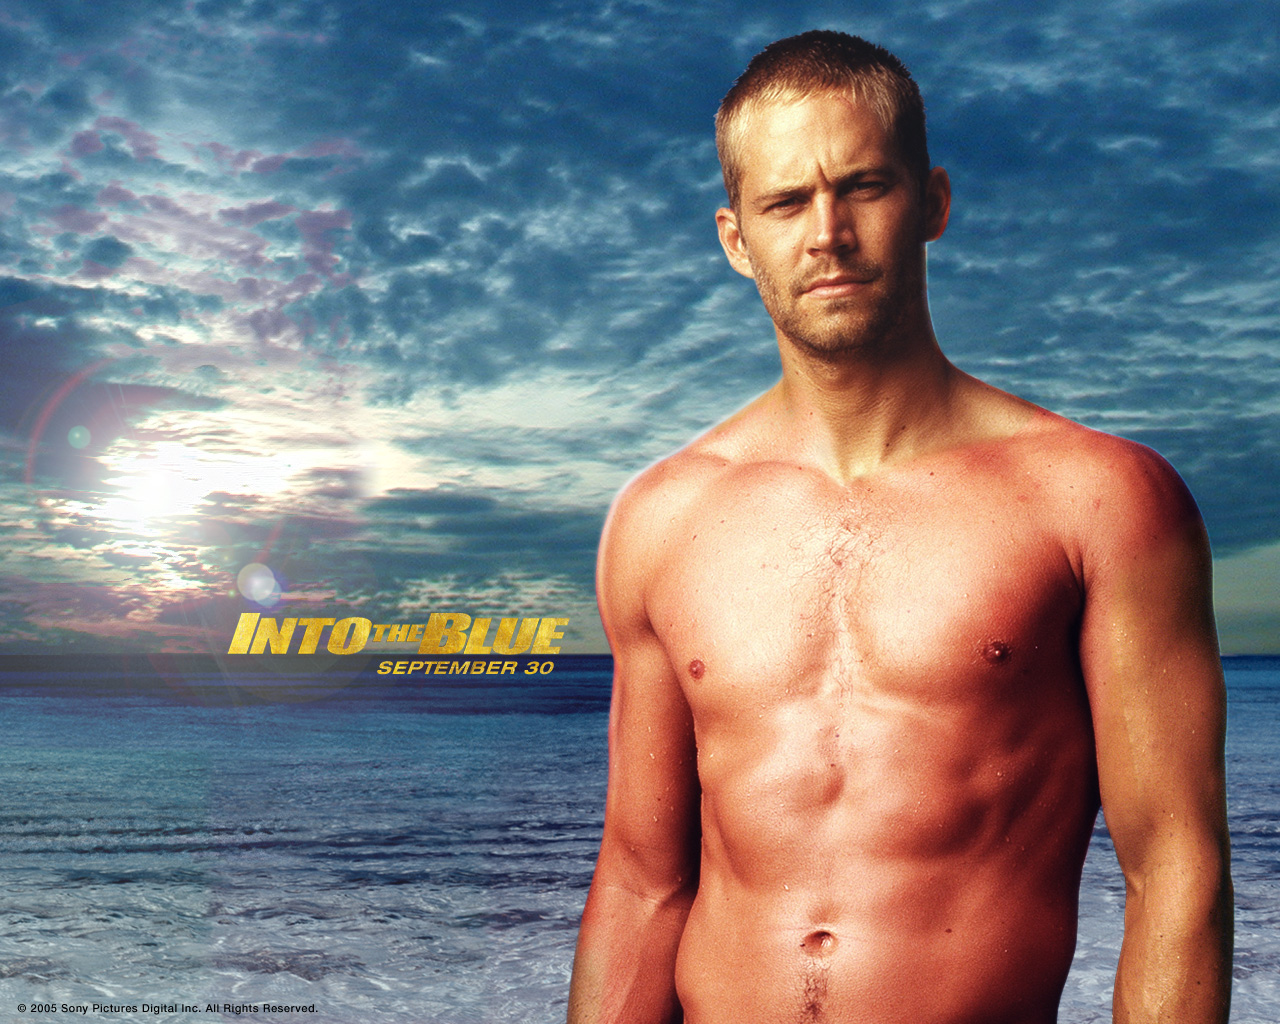 http://2.bp.blogspot.com/-b_sF8PfLISU/Ta6t9MOyUyI/AAAAAAAABME/vmBUAlK0bOo/s1600/Paul_Walker_in_Into_the_Blue_Wallpaper_5_1280.jpg